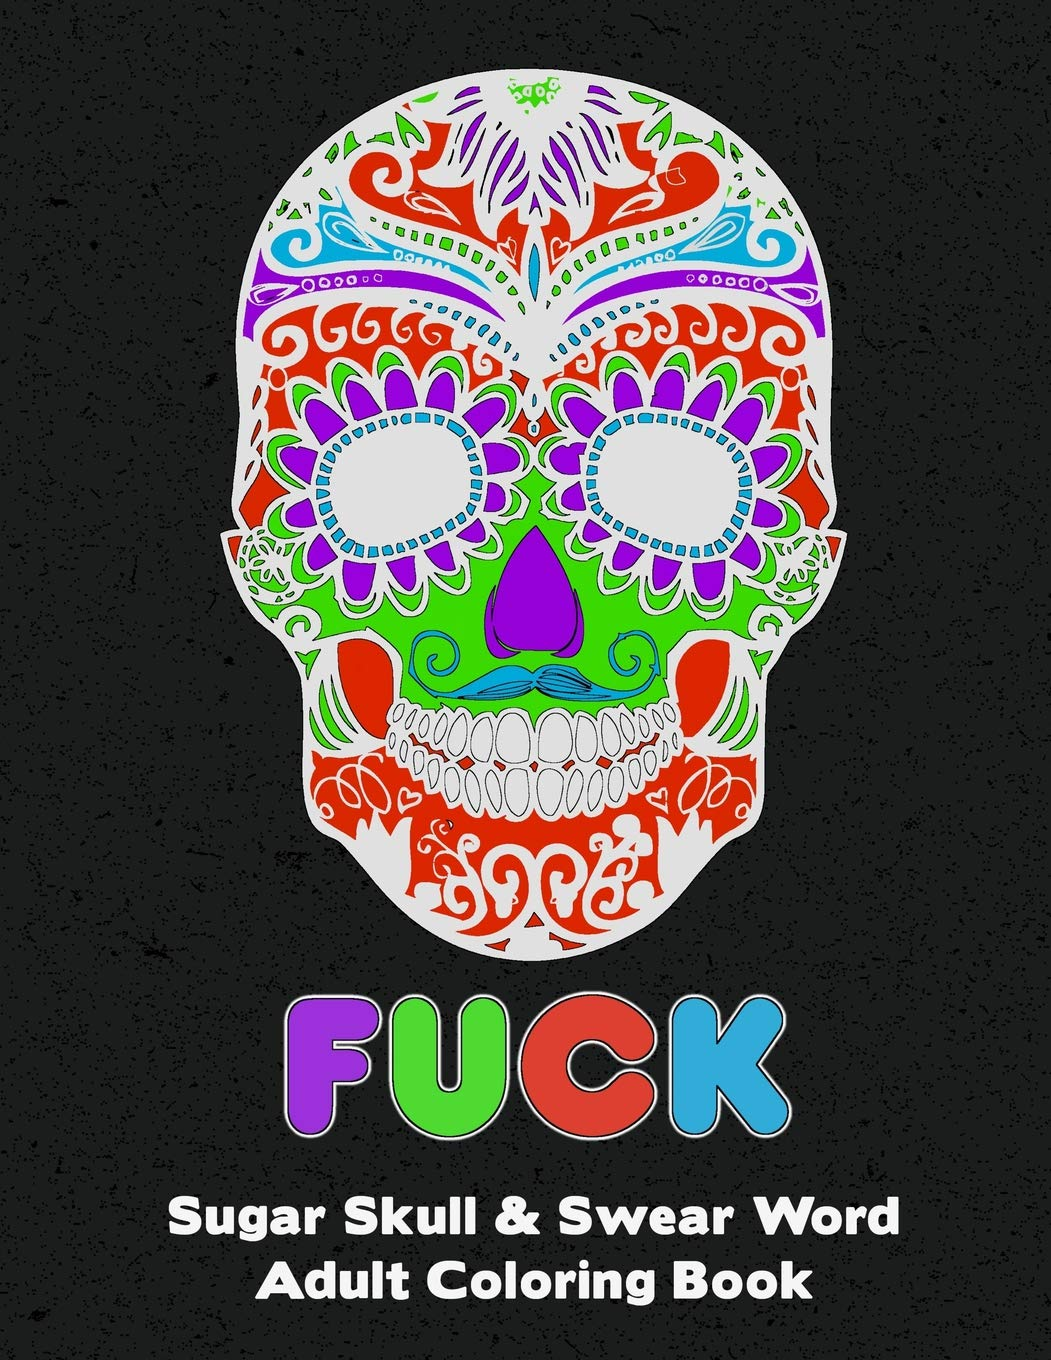 Sugar Skull Adult Swear And Cuss Word Coloring Book Fun Stress Relieve Activity Large Size